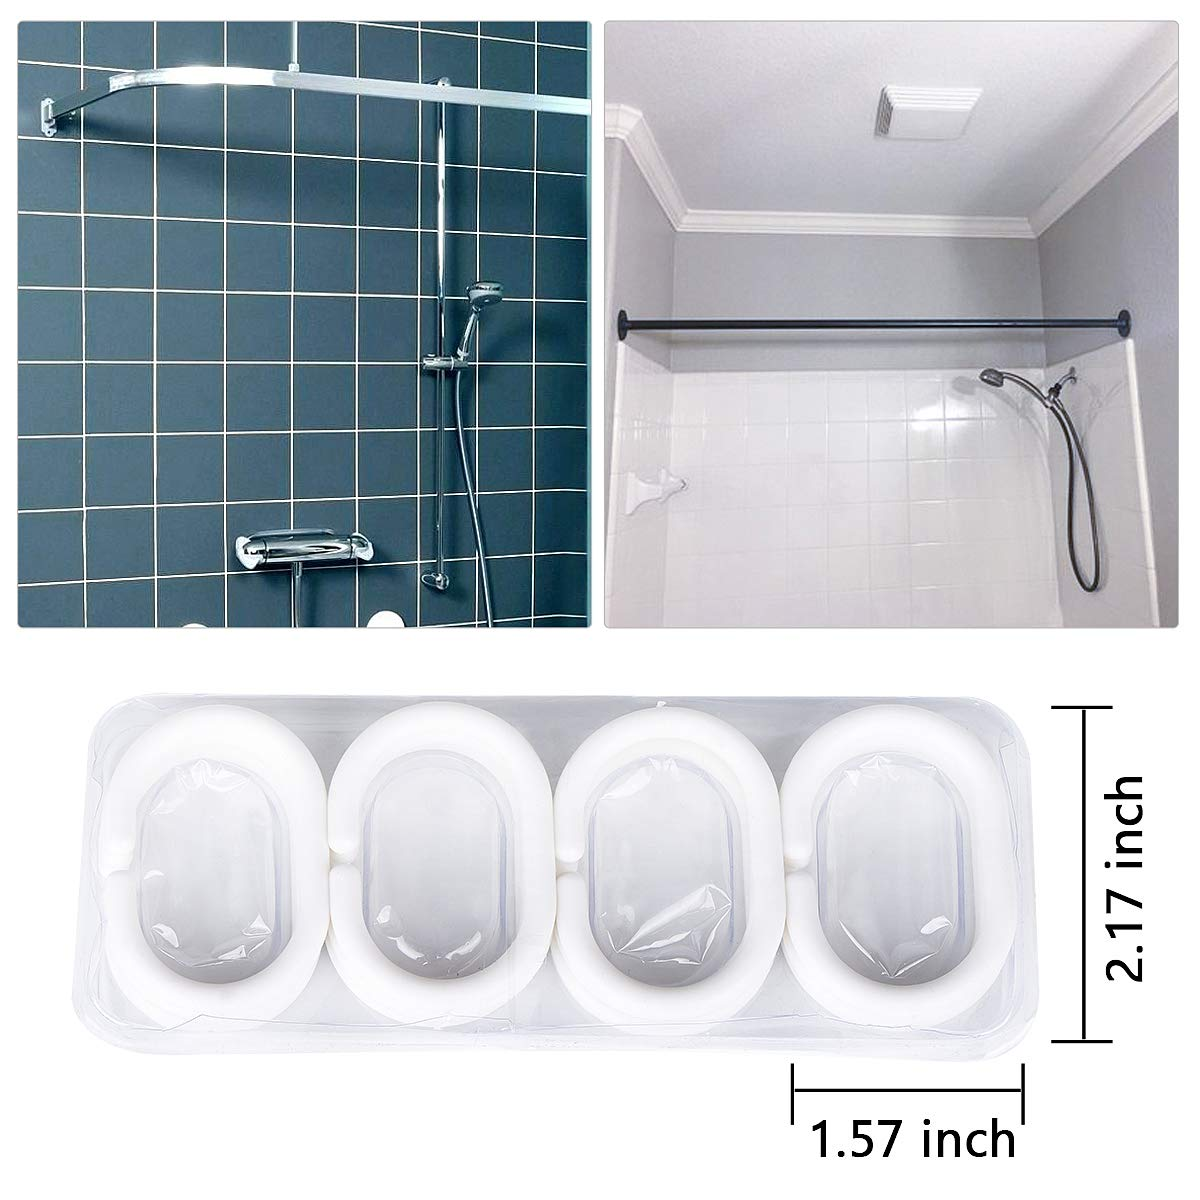 JRing Shower Curtain Polyester Fabric Waterproof Machine Washable with 12 Hooks 72x72 Inch by JRing (Image #3)